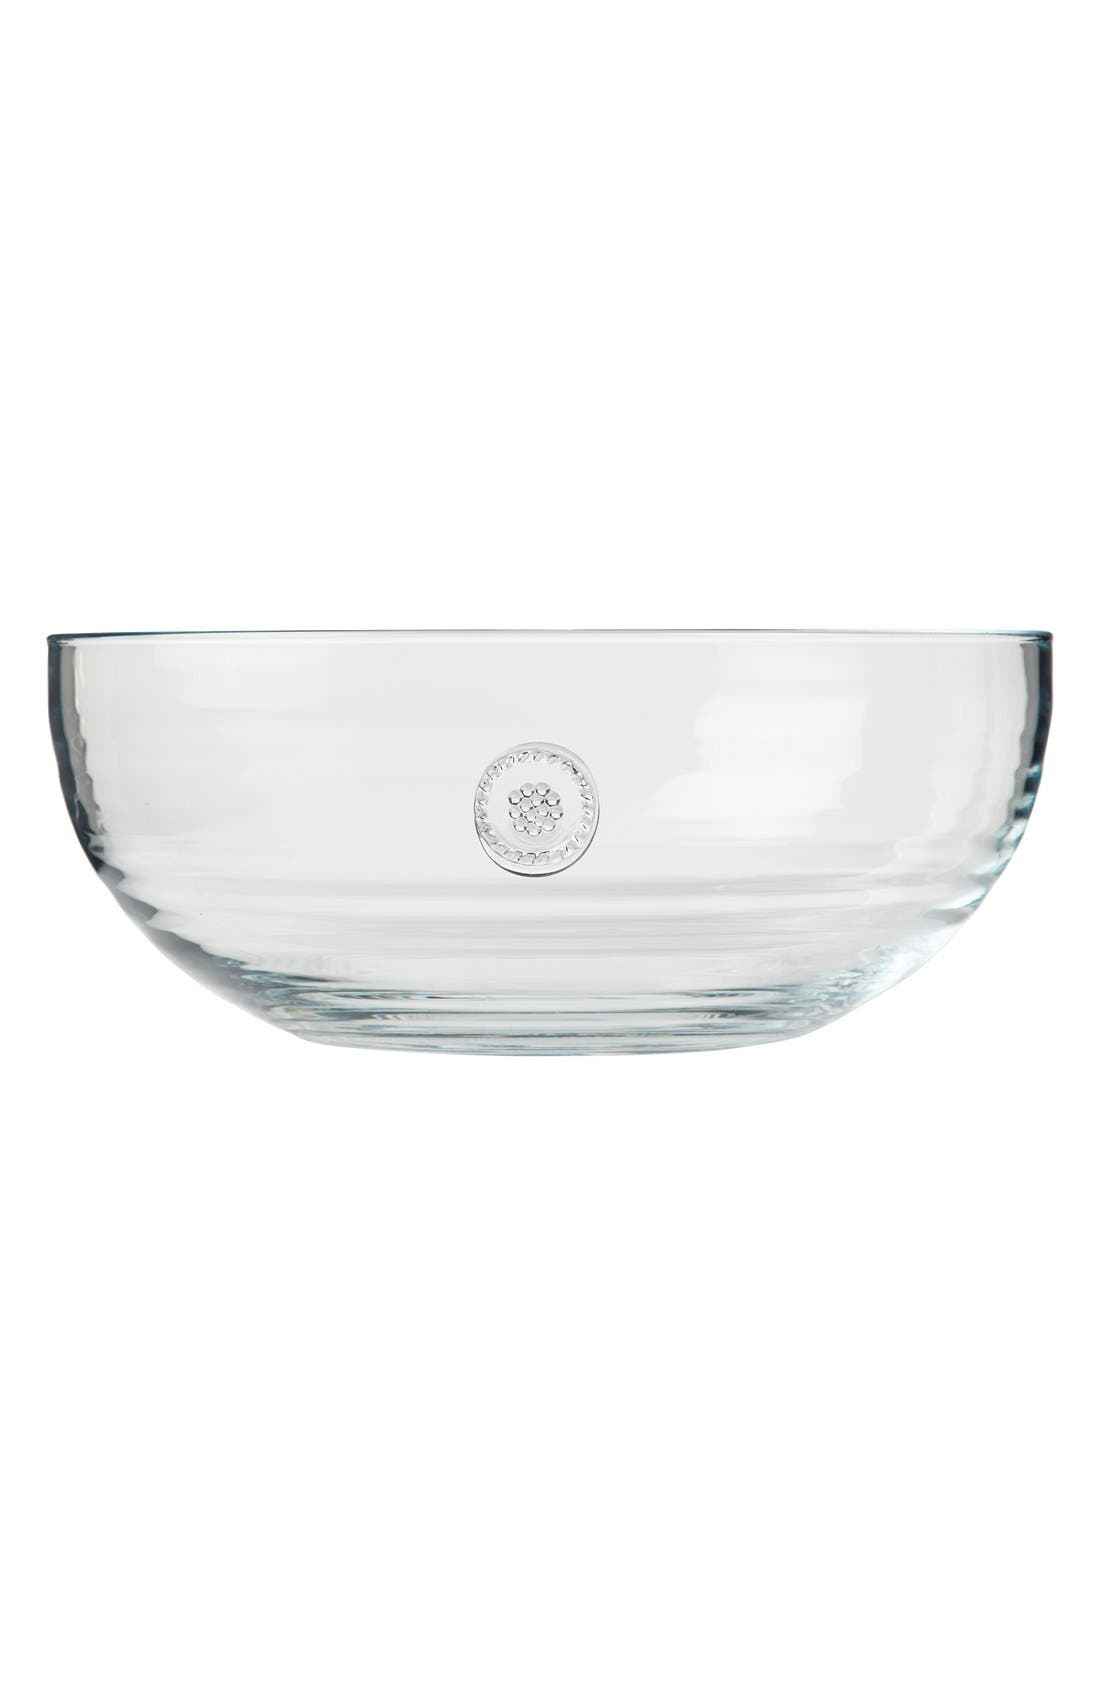 Berry & Thread Large Glass Bowl,                             Main thumbnail 1, color,                             CLEAR